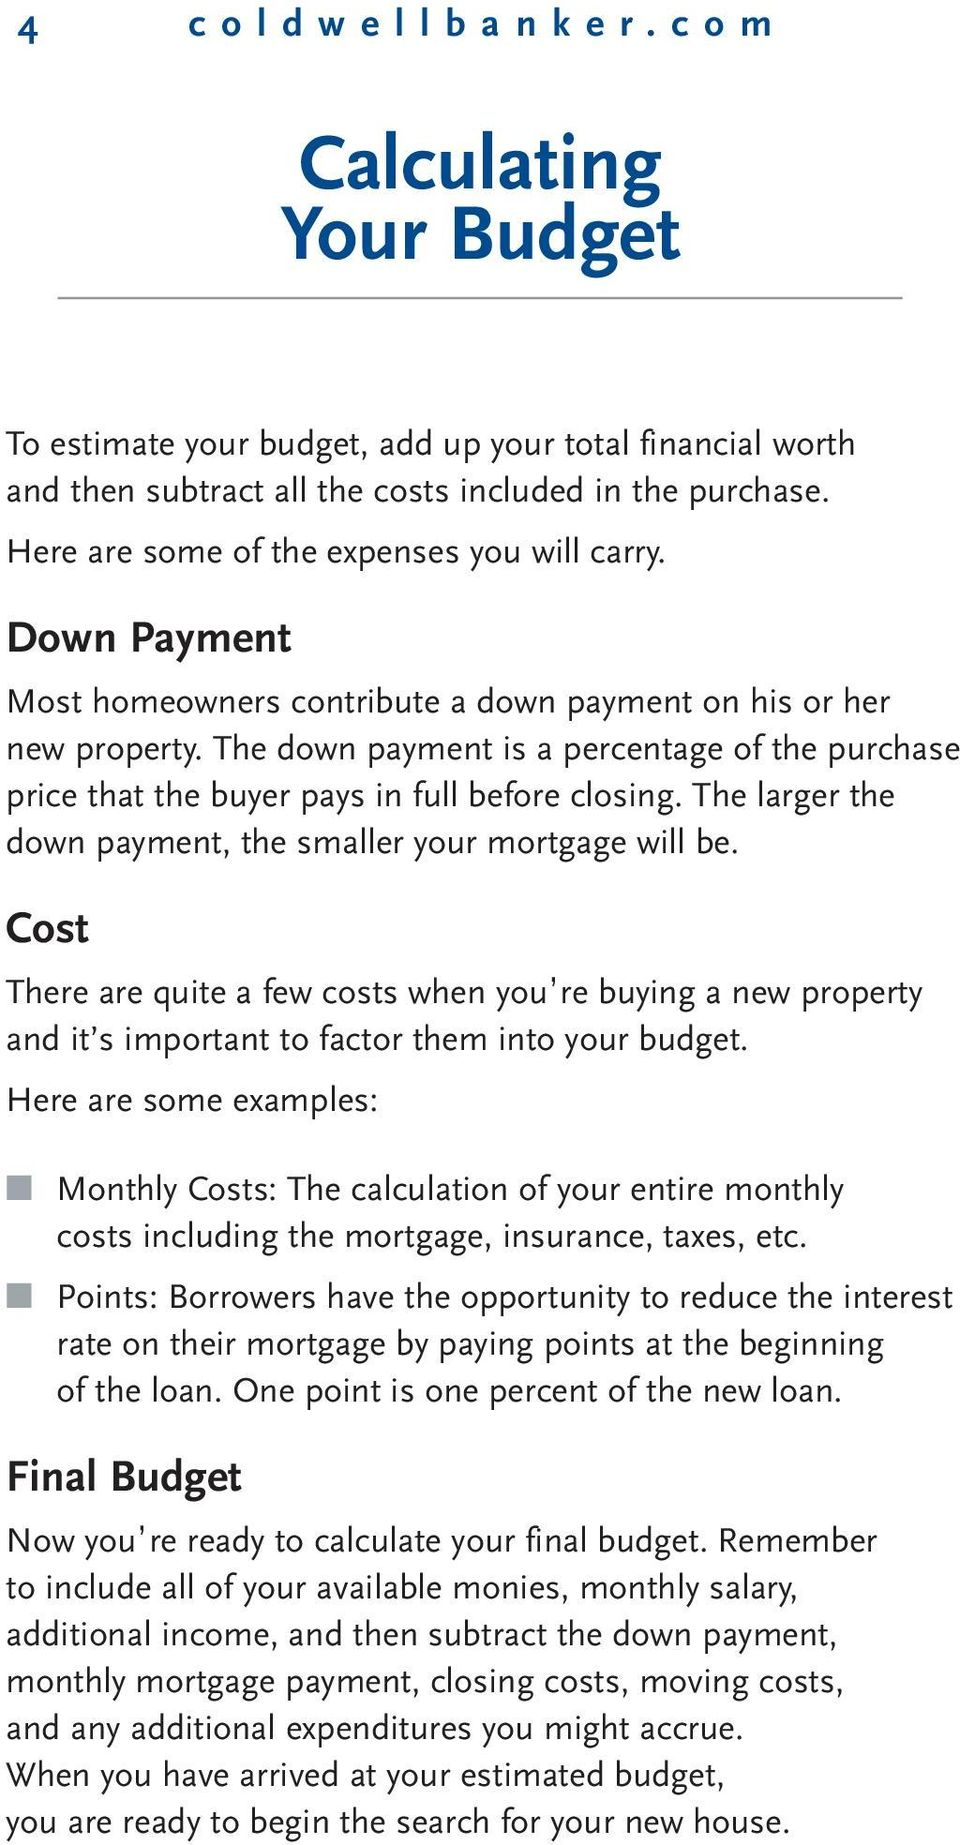 The down payment is a percentage of the purchase price that the buyer pays in full before closing. The larger the down payment, the smaller your mortgage will be.